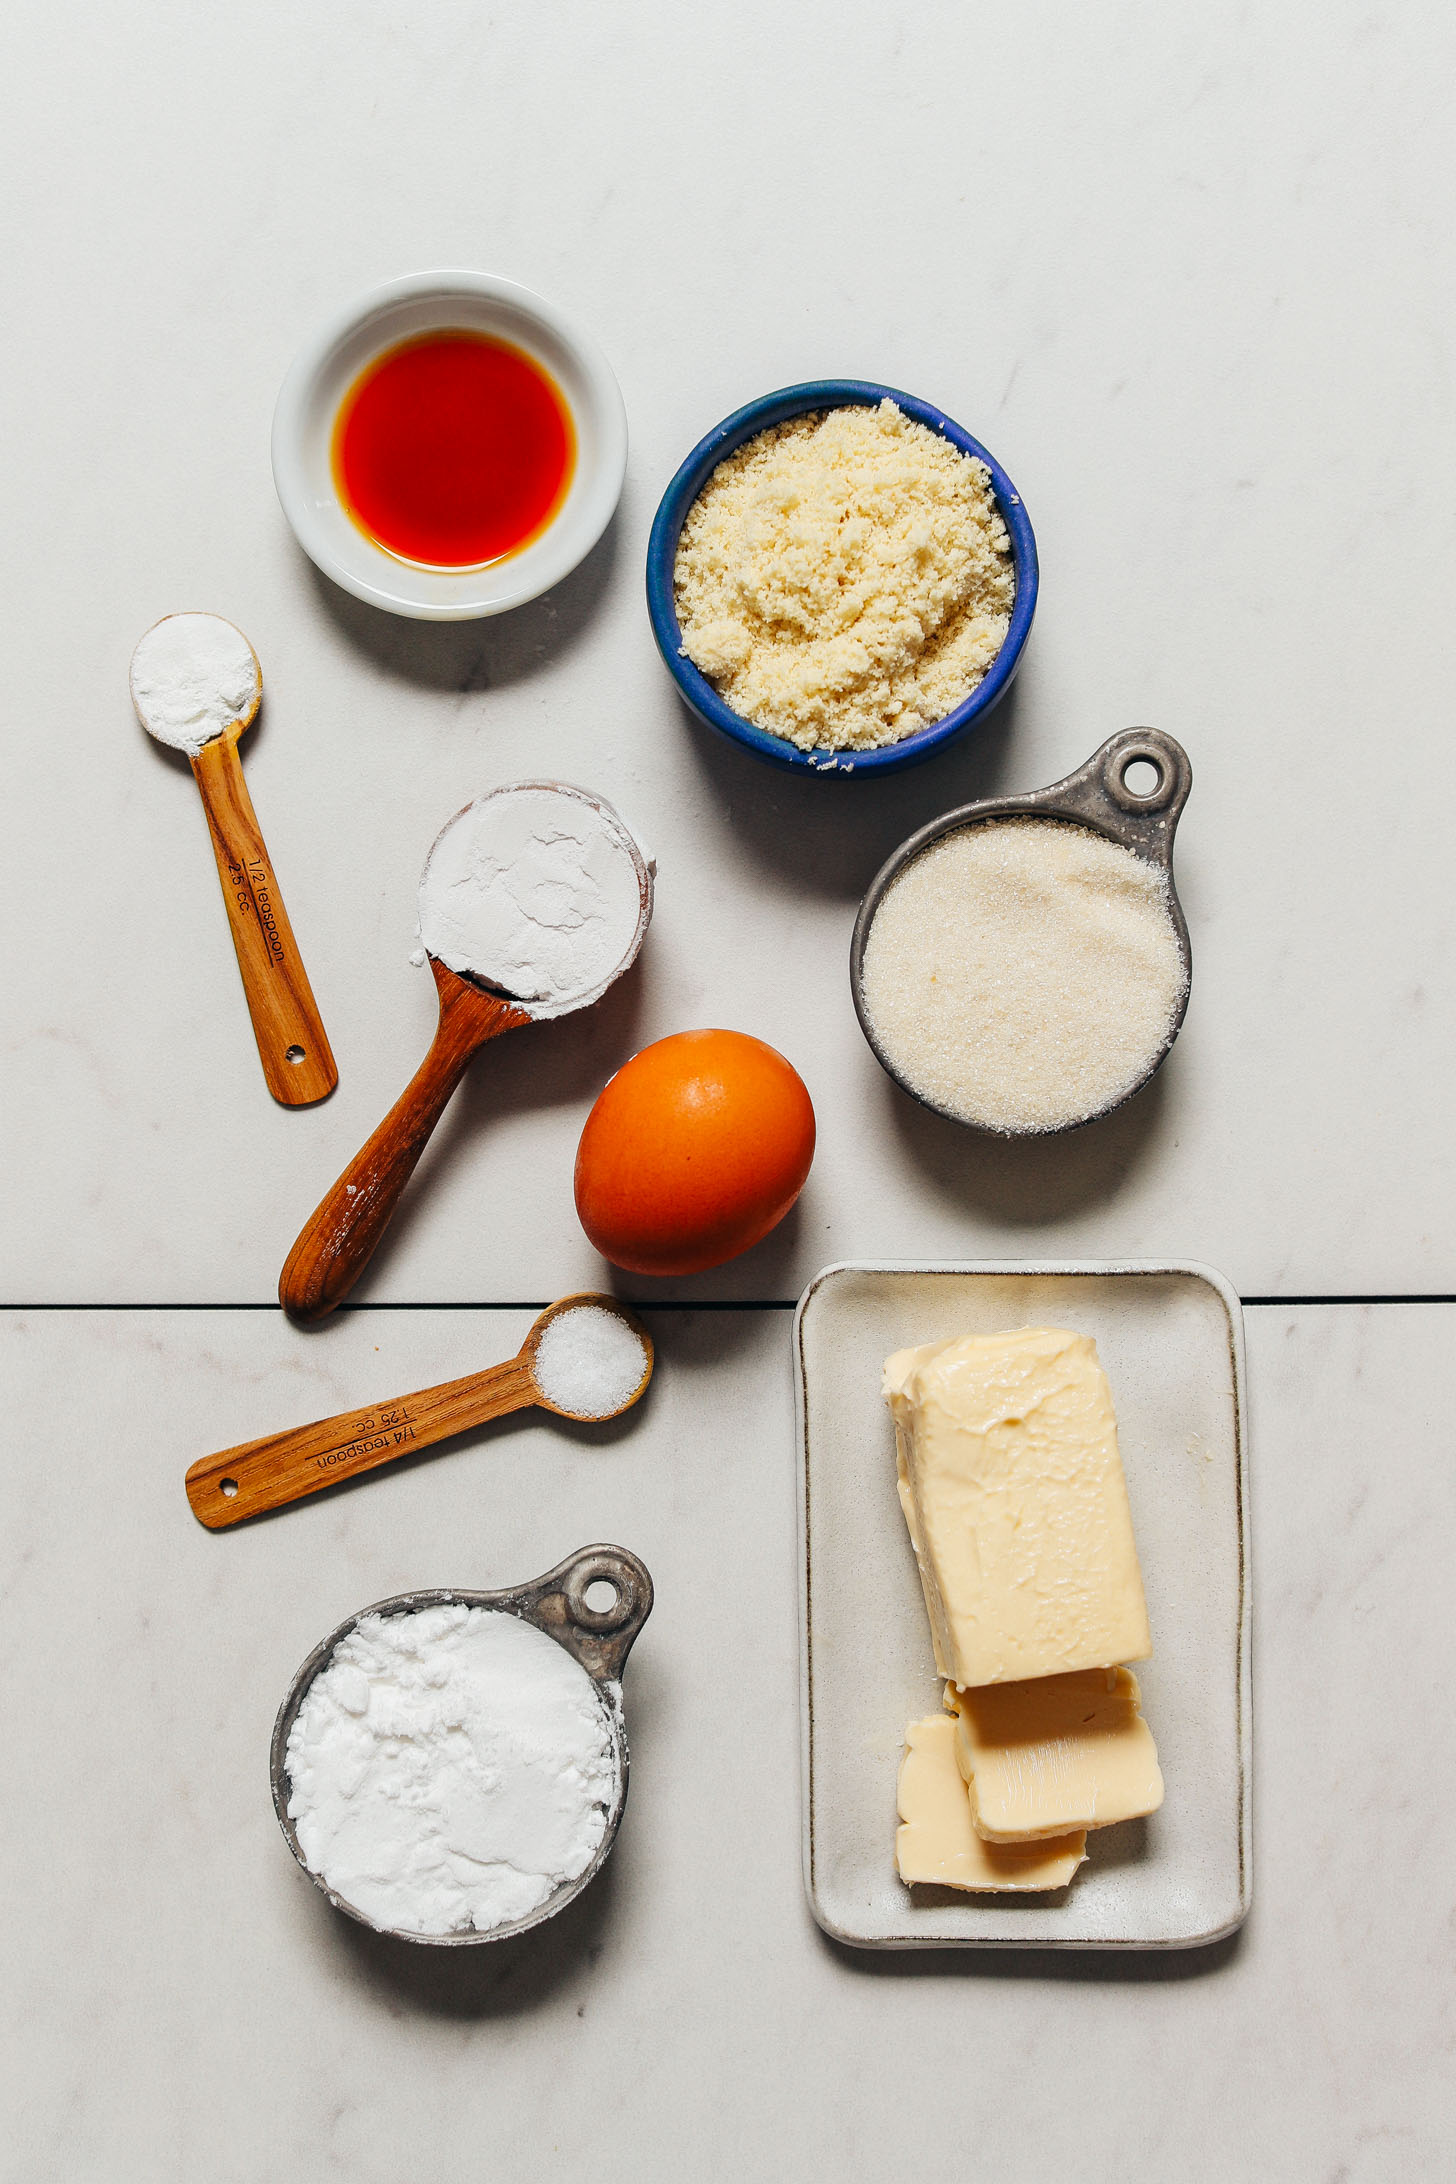 Ingredients for making our Grain-Free Sugar Cookie Recipe